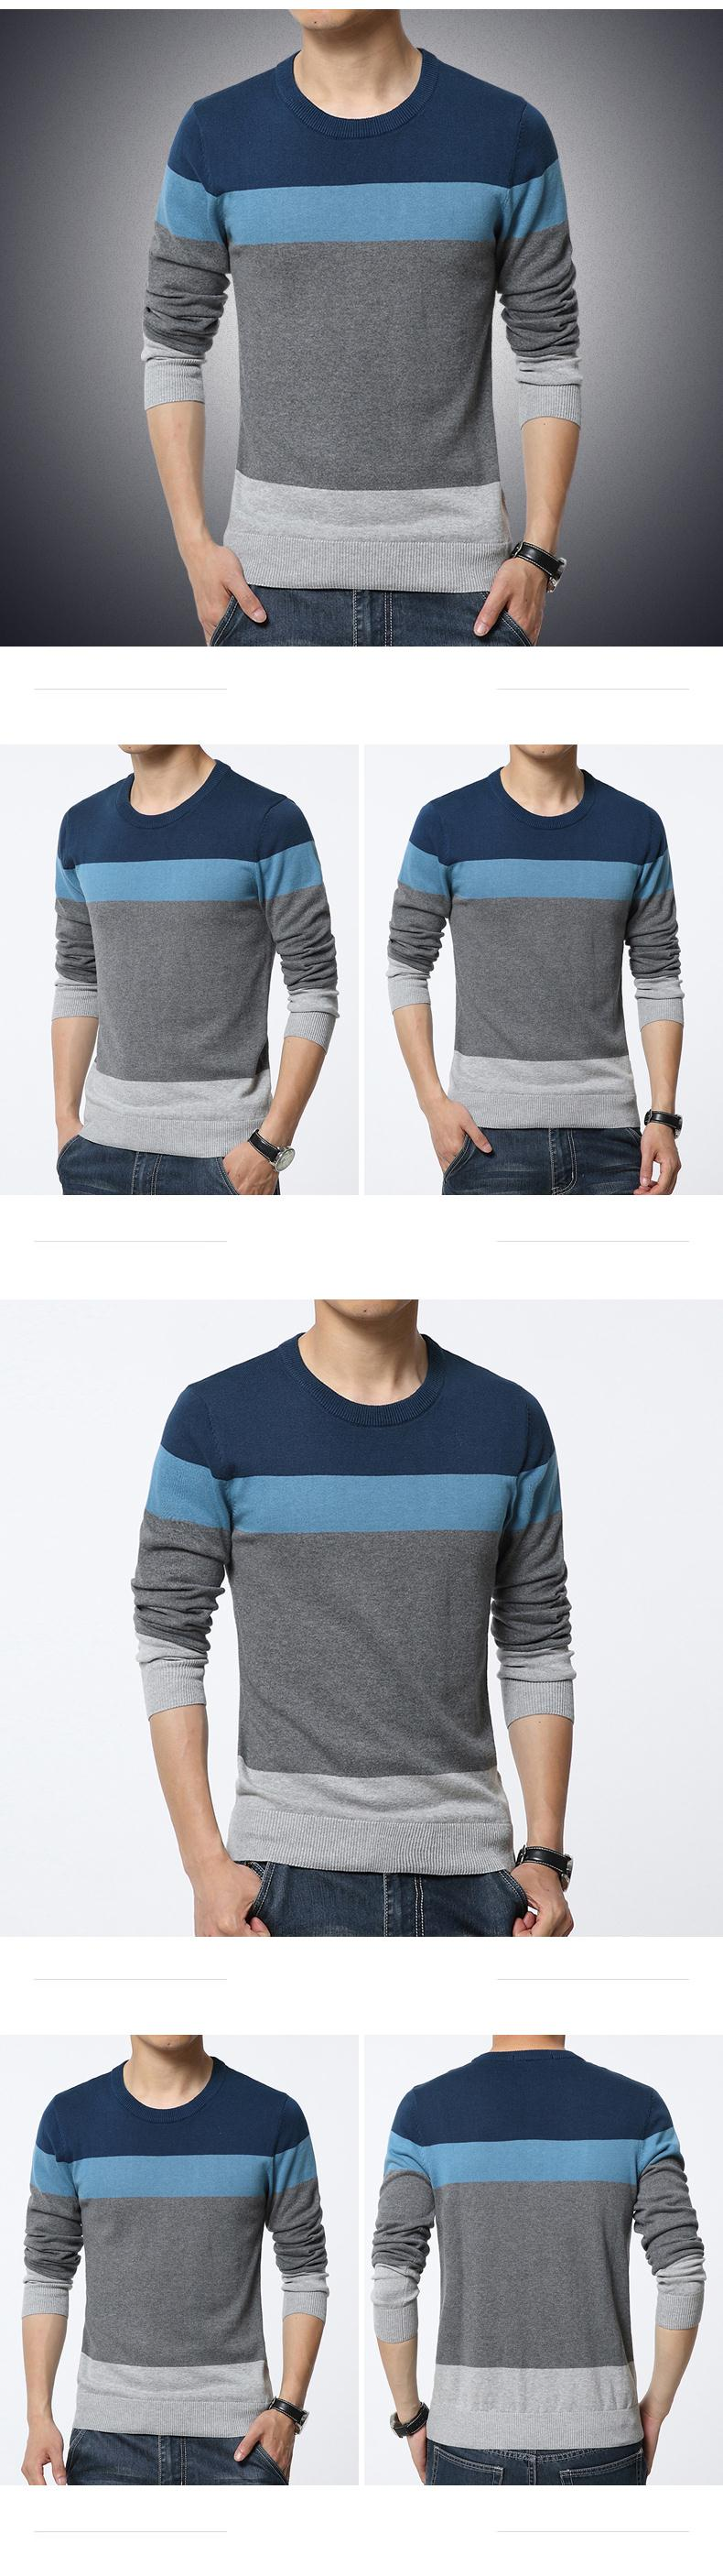 19 Autumn Casual Men's Sweater O-Neck Striped Slim Fit Knittwear Mens Sweaters Pullovers Pullover Men Pull Homme M-3XL 4